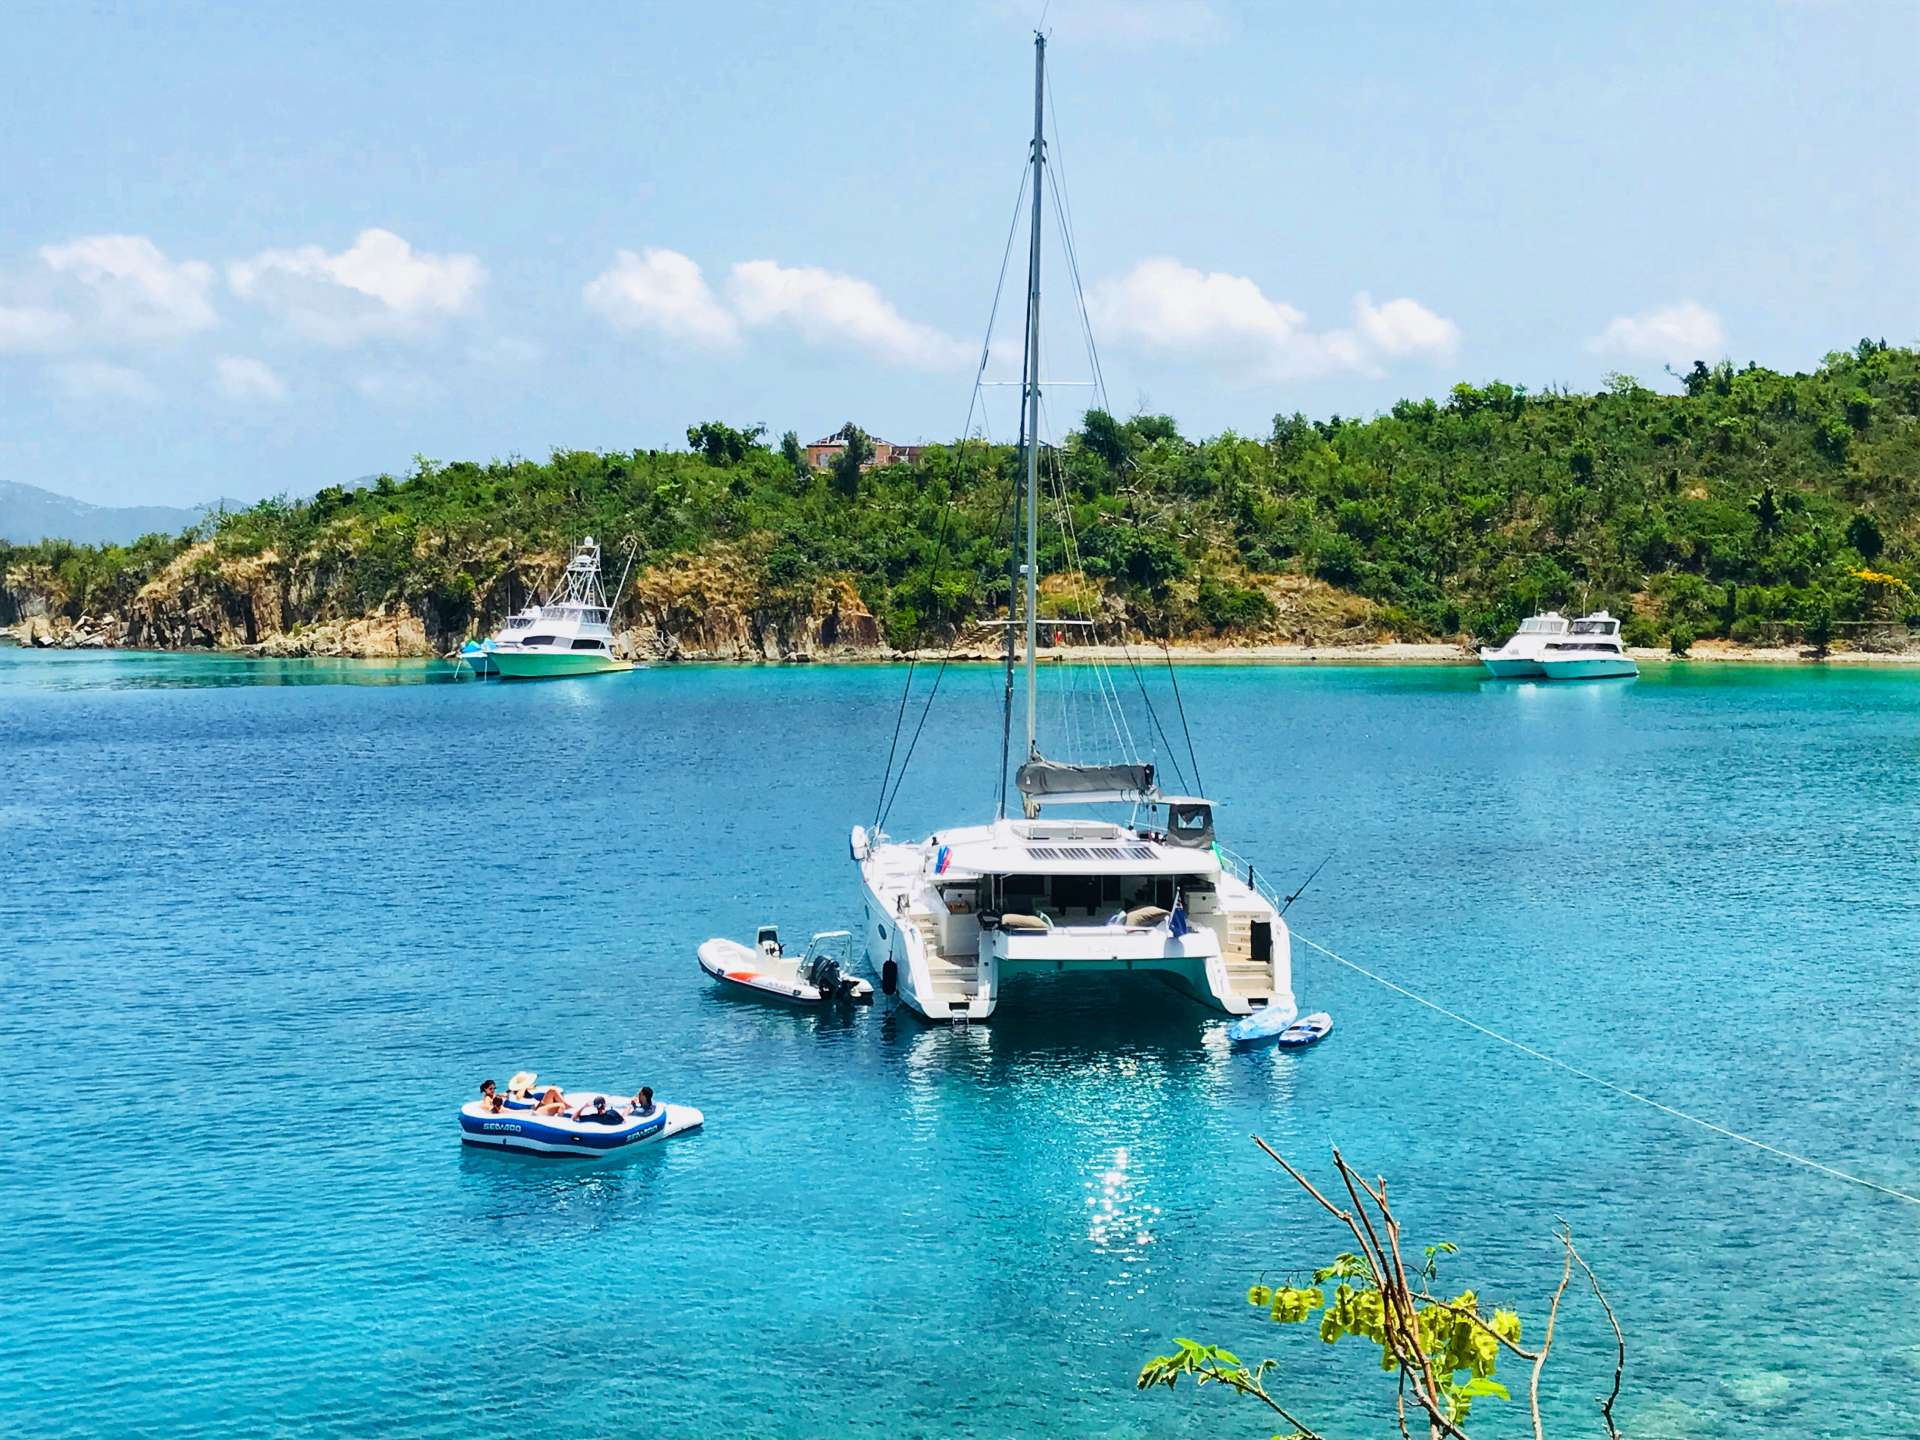 Odyssea at anchor, luxury catamaran, caribbean charters, sailing trips, regency yacht vacations, crewed yachts